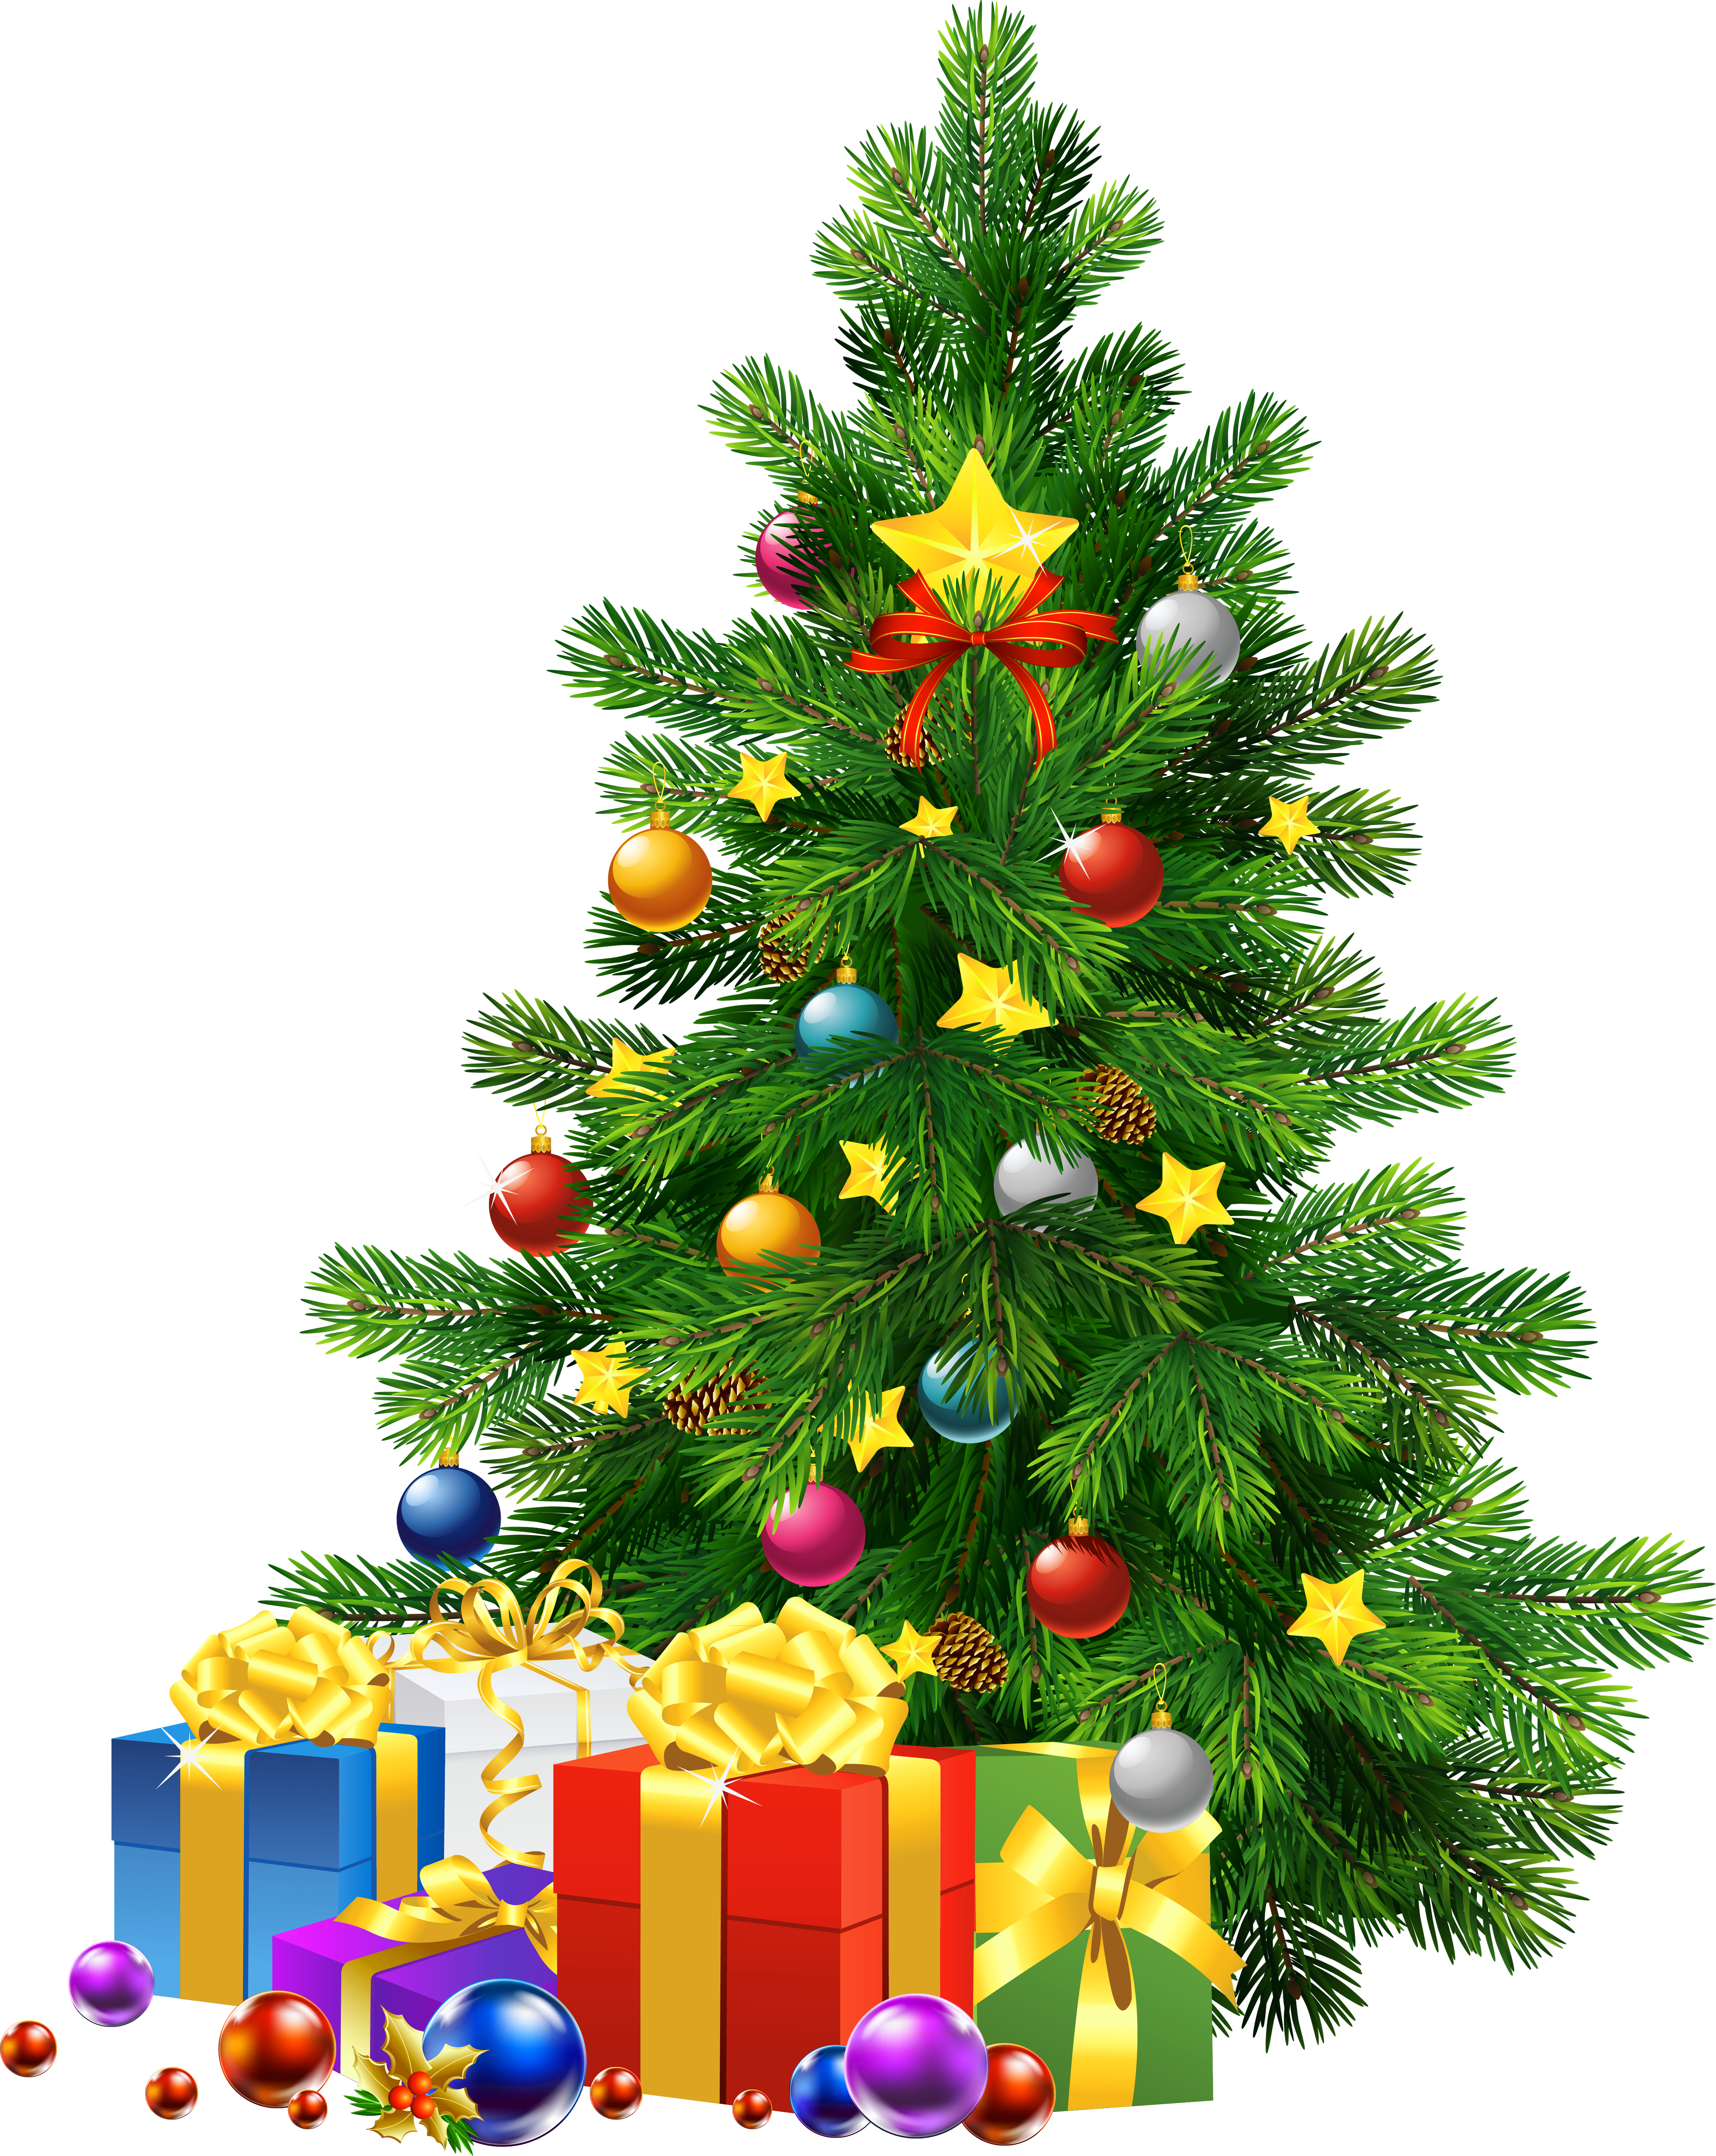 Christmas Tree With Presents Clip Art (21) - X Mas Tree PNG